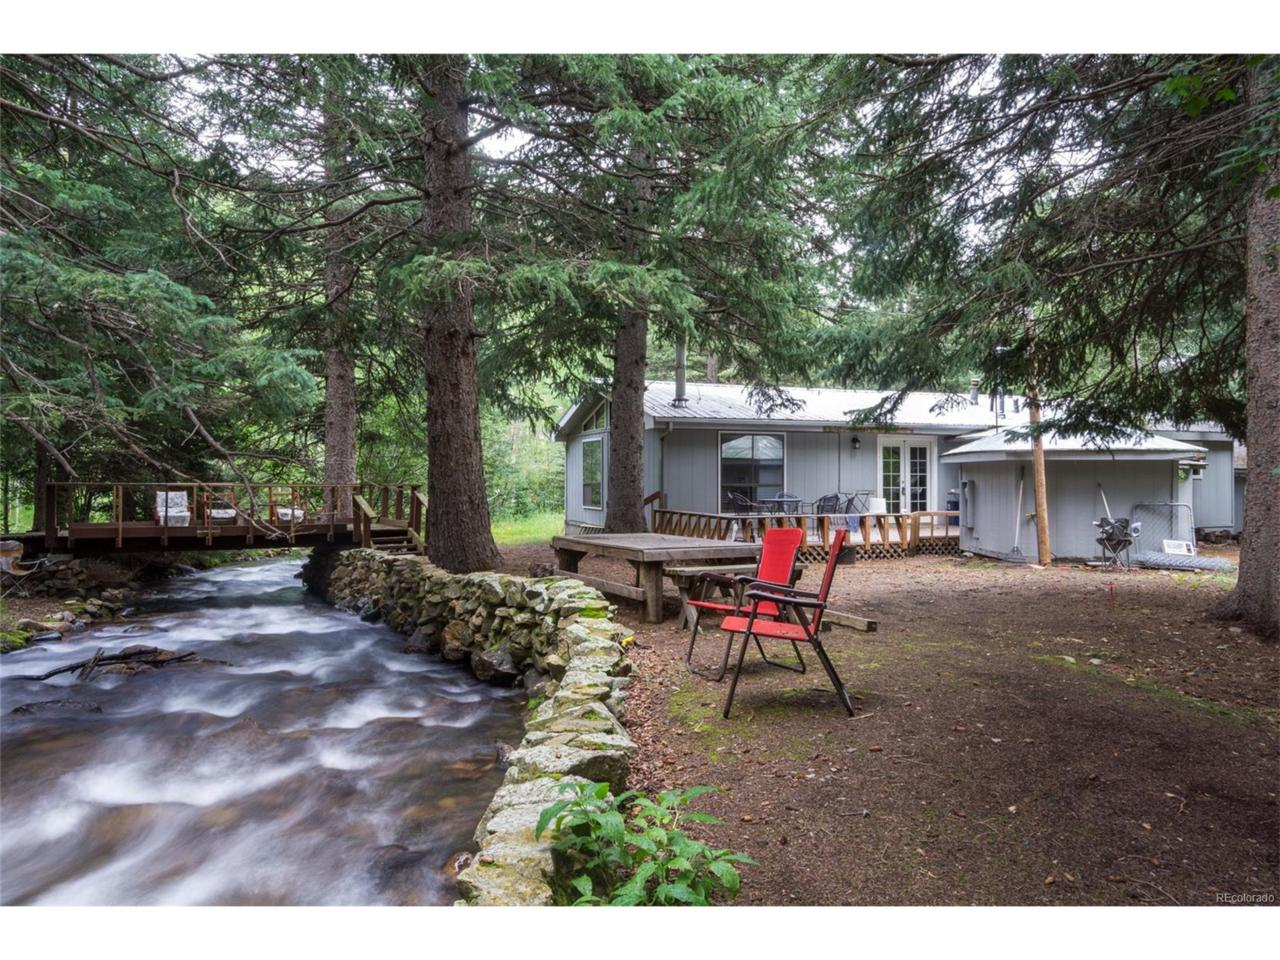 3117 Fall River Road, Idaho Springs, CO 80452 (MLS #5287696) :: 8z Real Estate